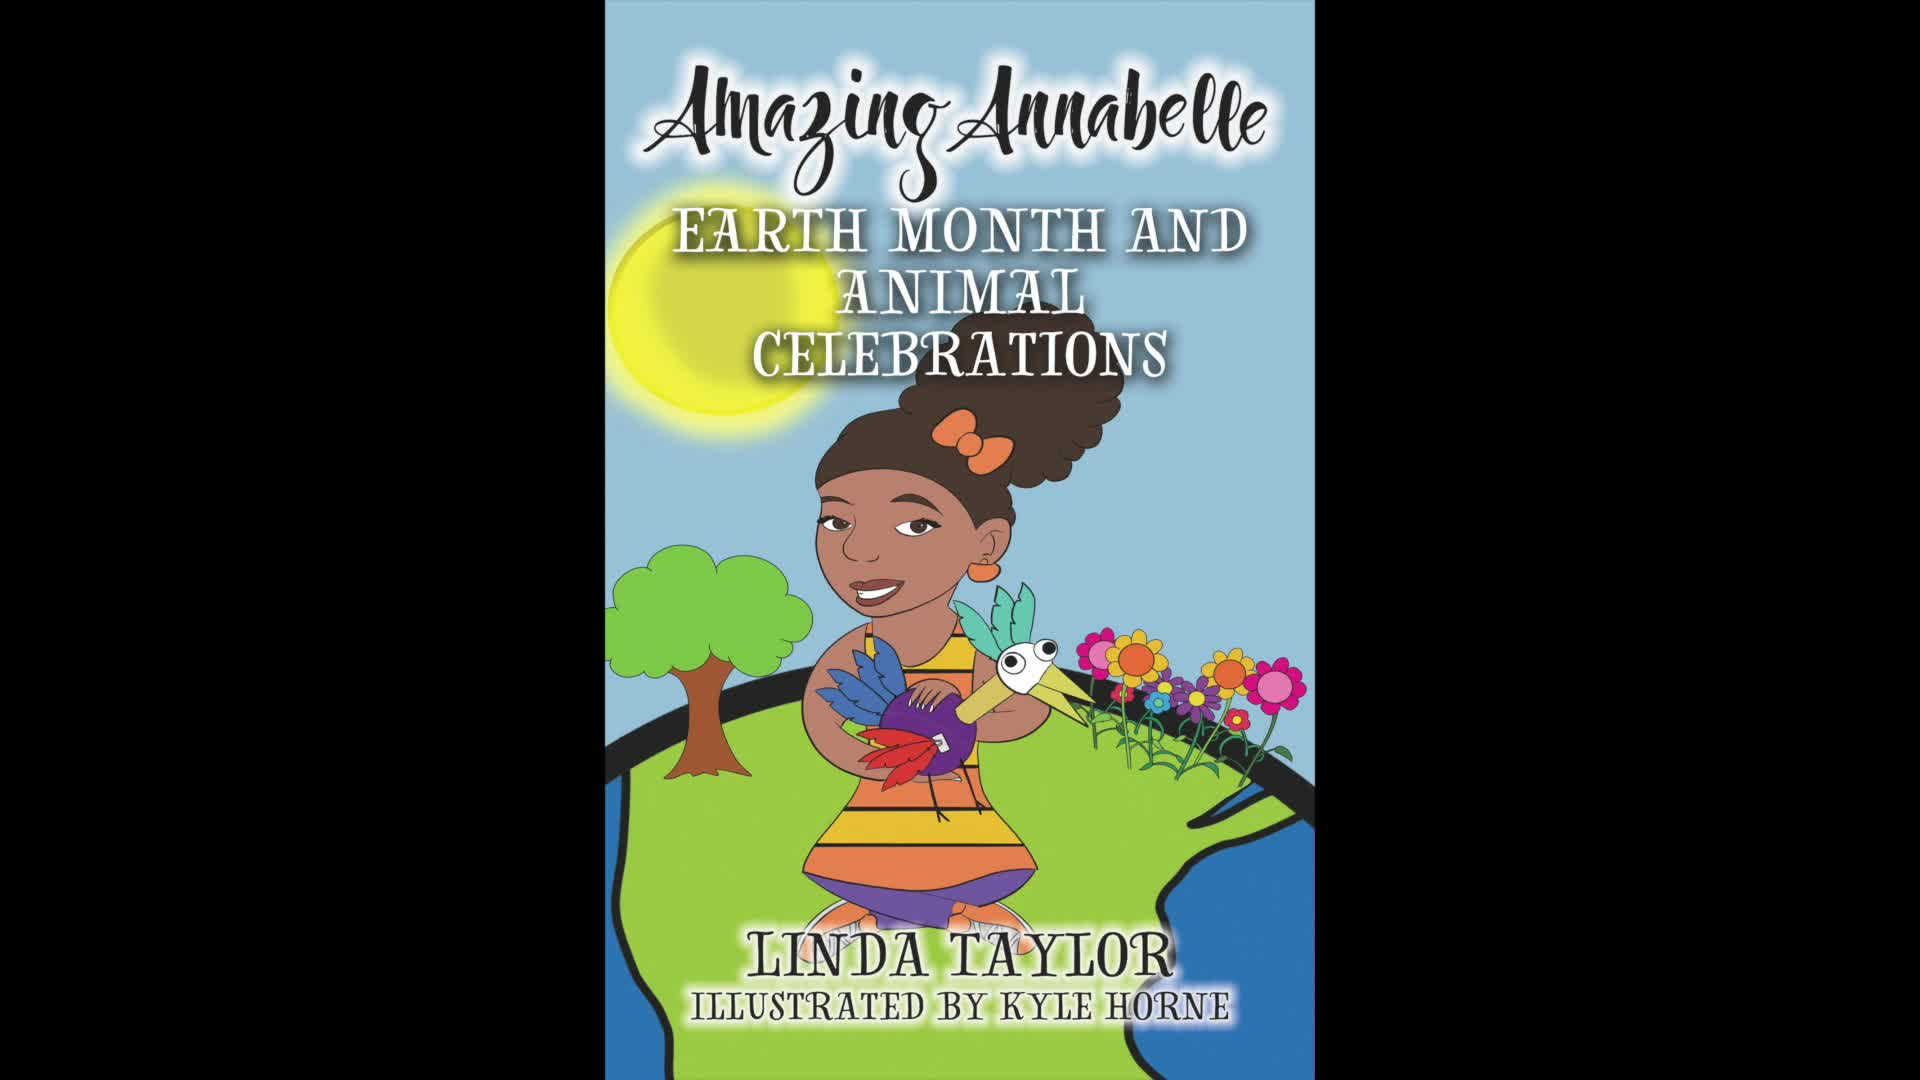 Amazing Annabelle Earth Month And Animal Celebrations Chapter 2